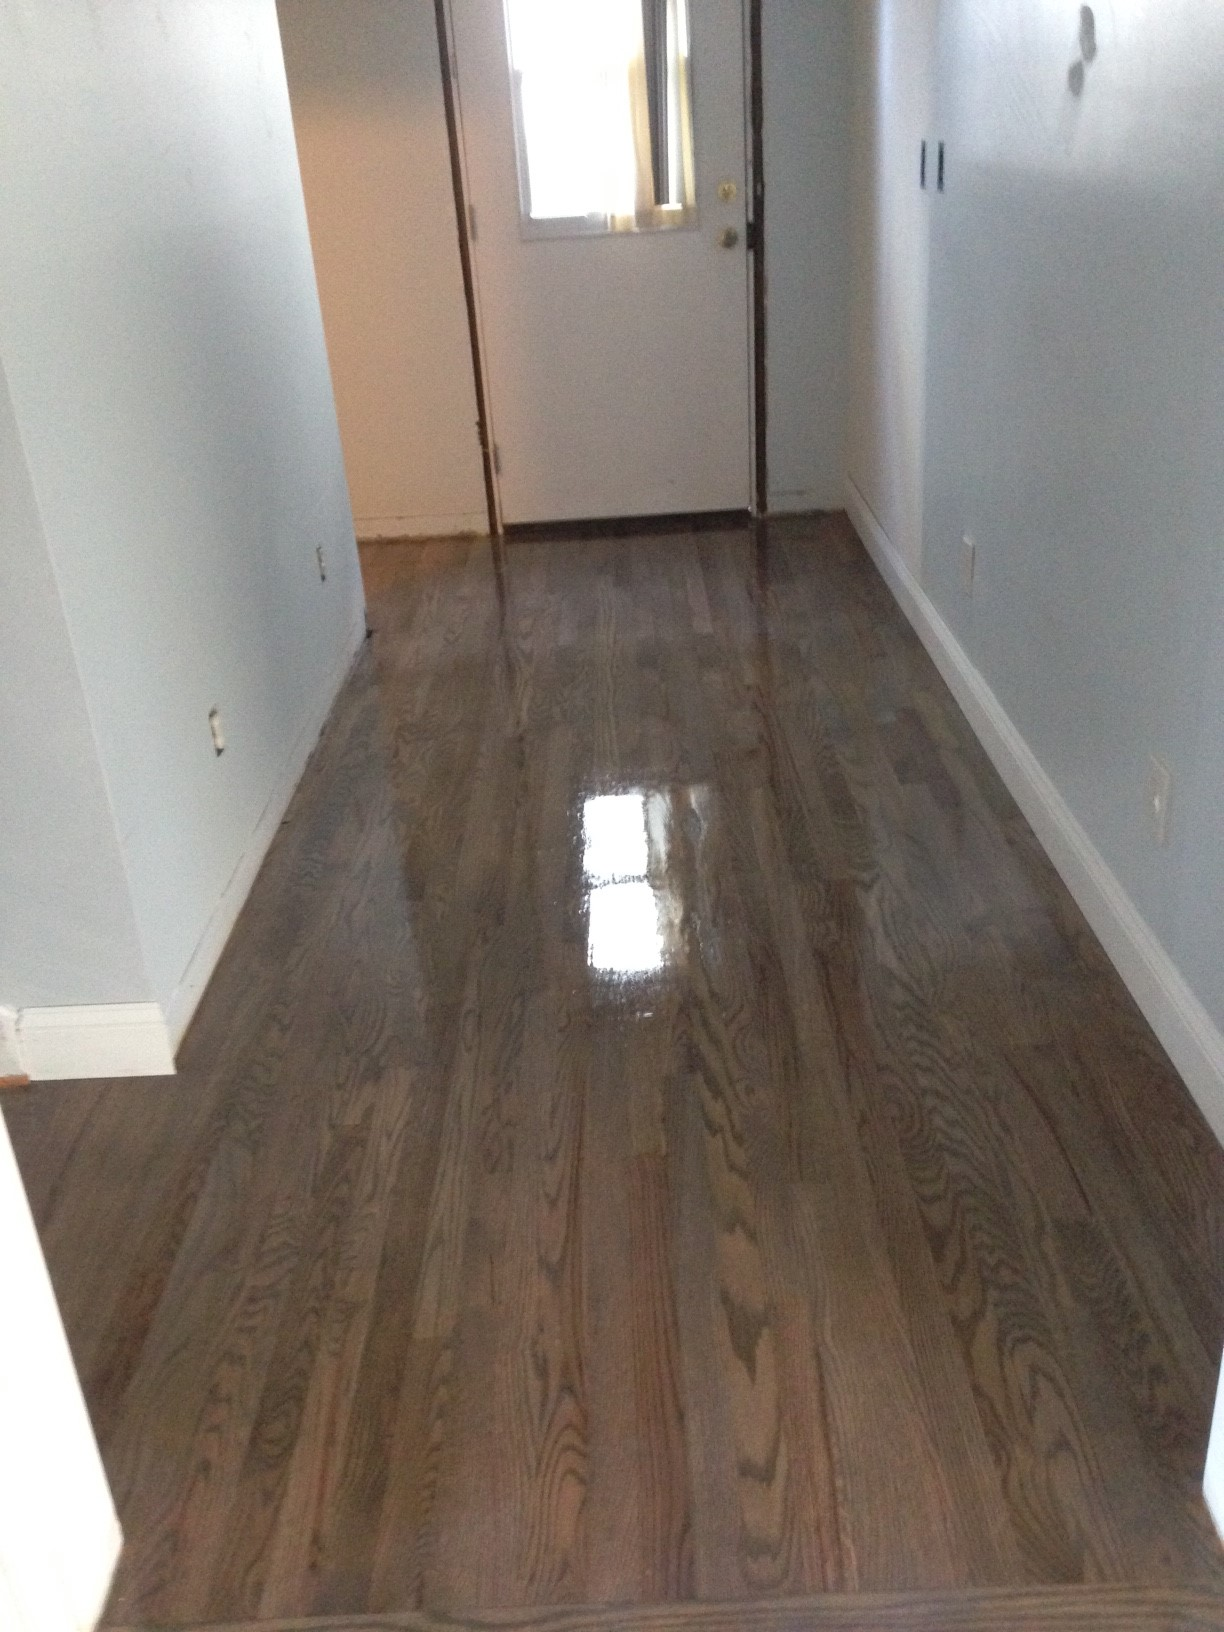 Wood Flooring Jacksonville Fl Cool Wood Floor Cleaning